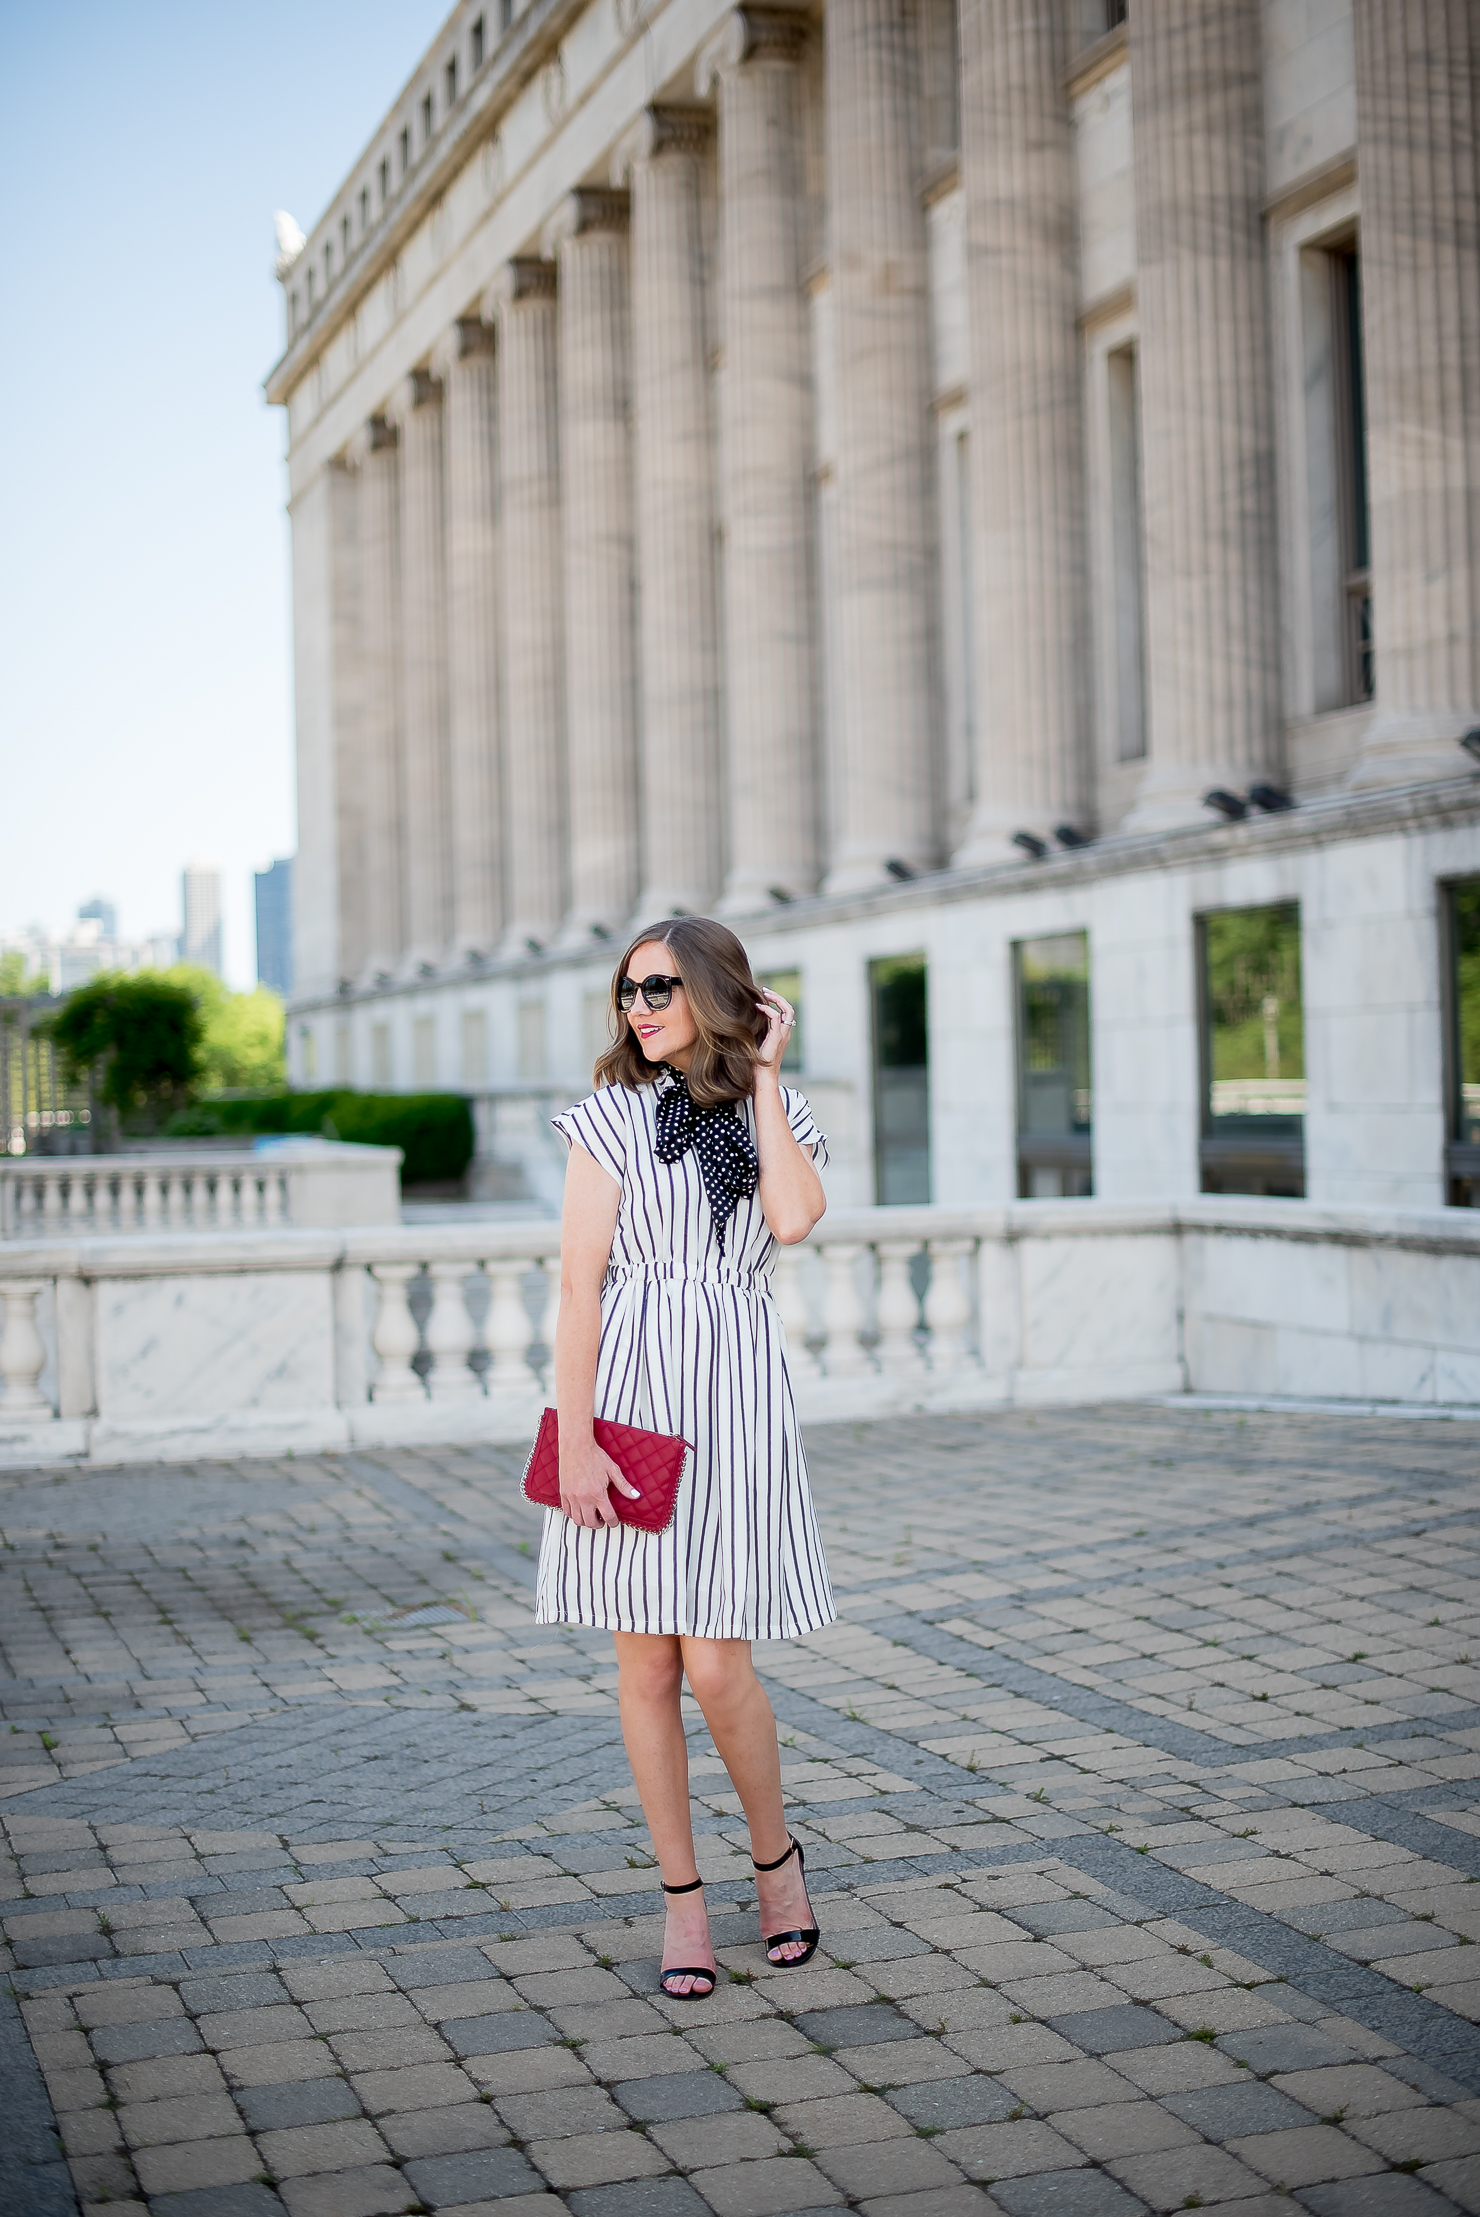 choies-white-and-black-striped-dress-forever-21-red-quilted-chain-clutch-black-strappy-heels-chicago-field-museum-print-mixing